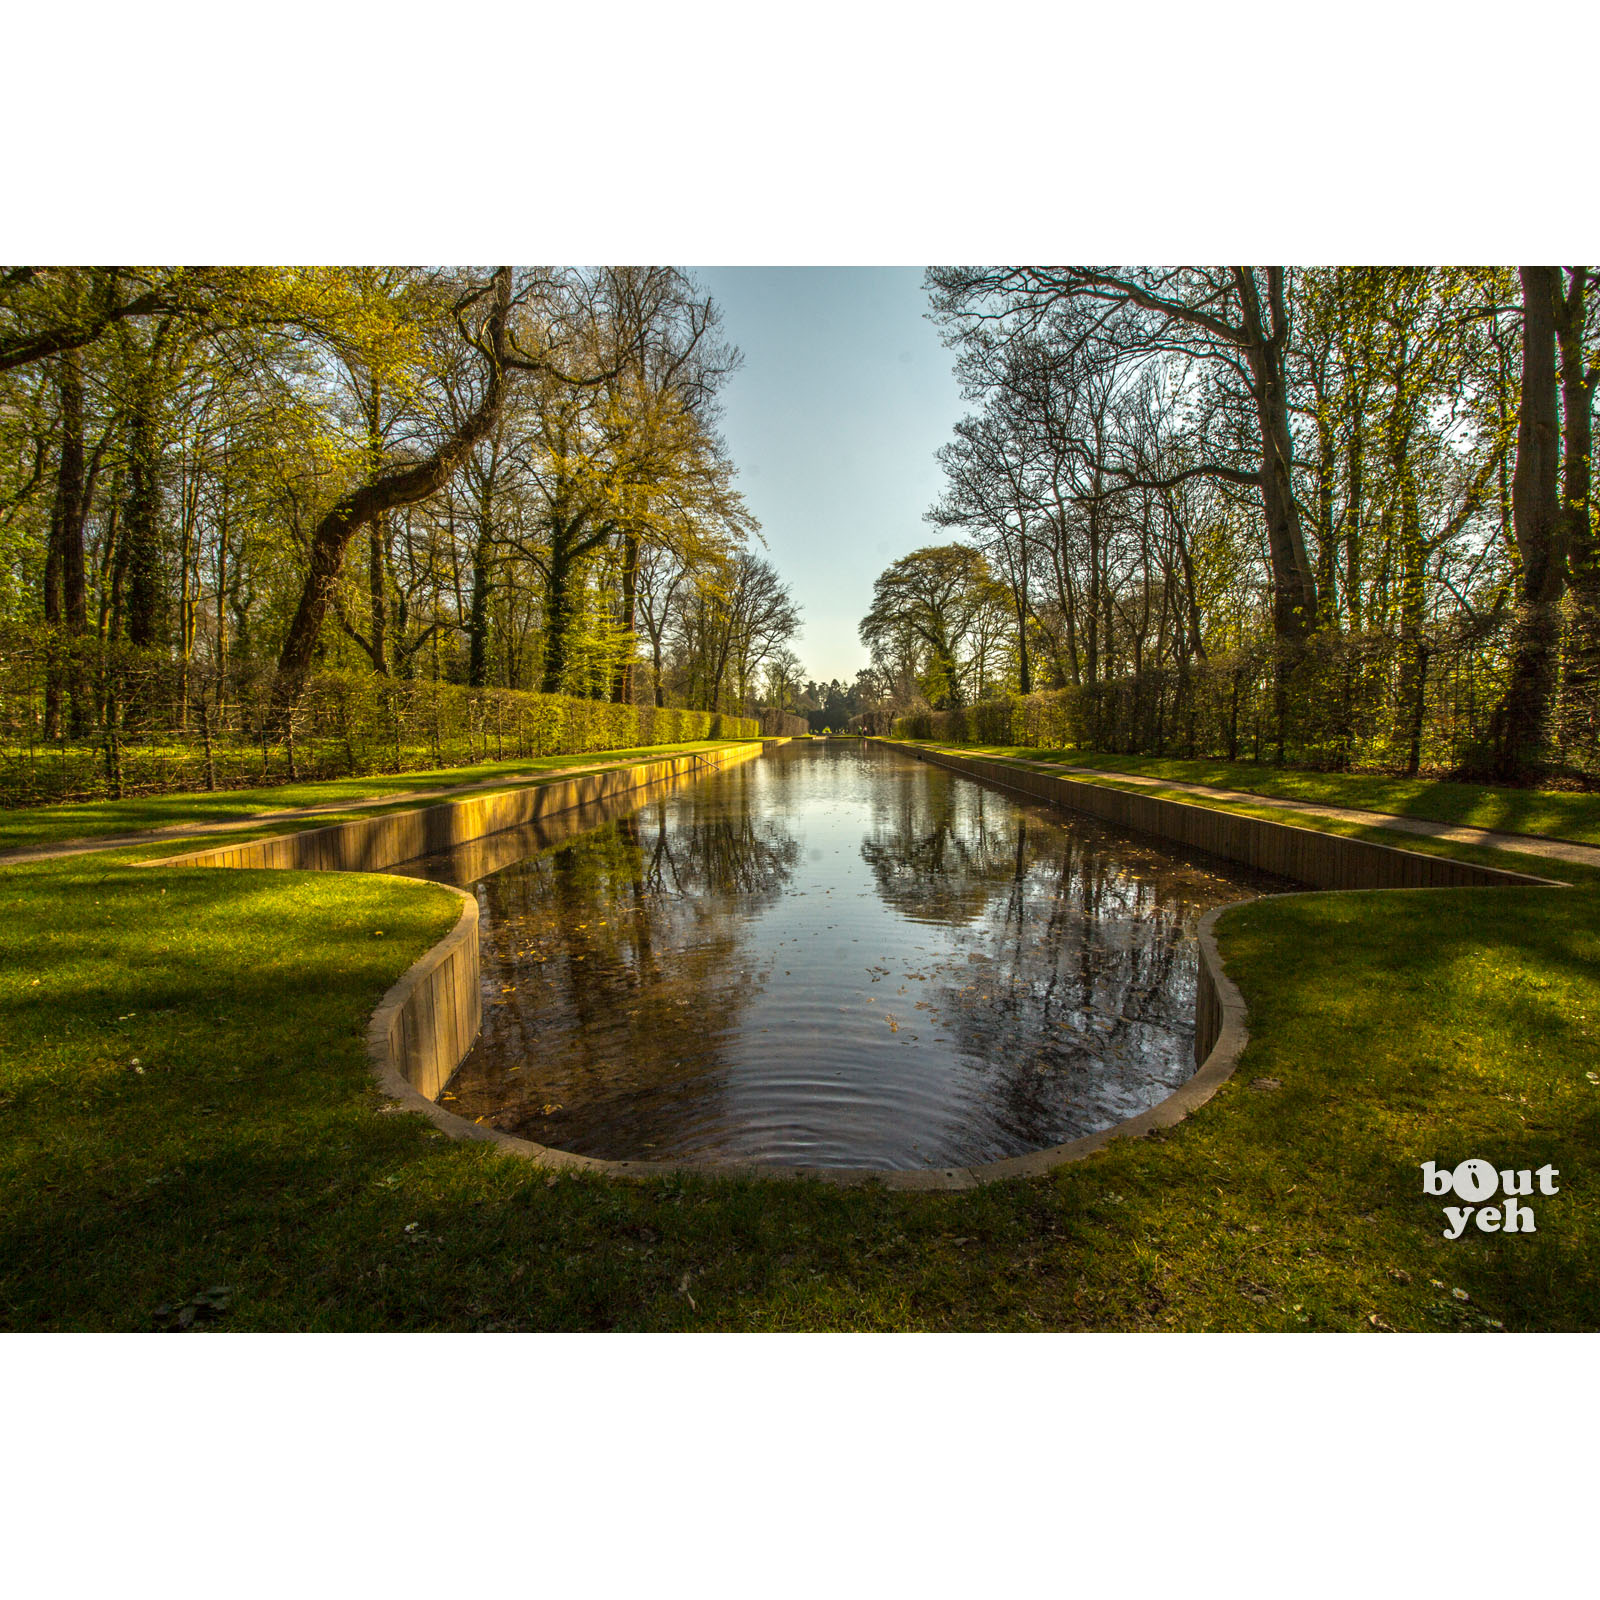 Image - Featured photographer, Justin McLean, photograph of Antrim Castle gardens, Antrim, Northern Ireland.